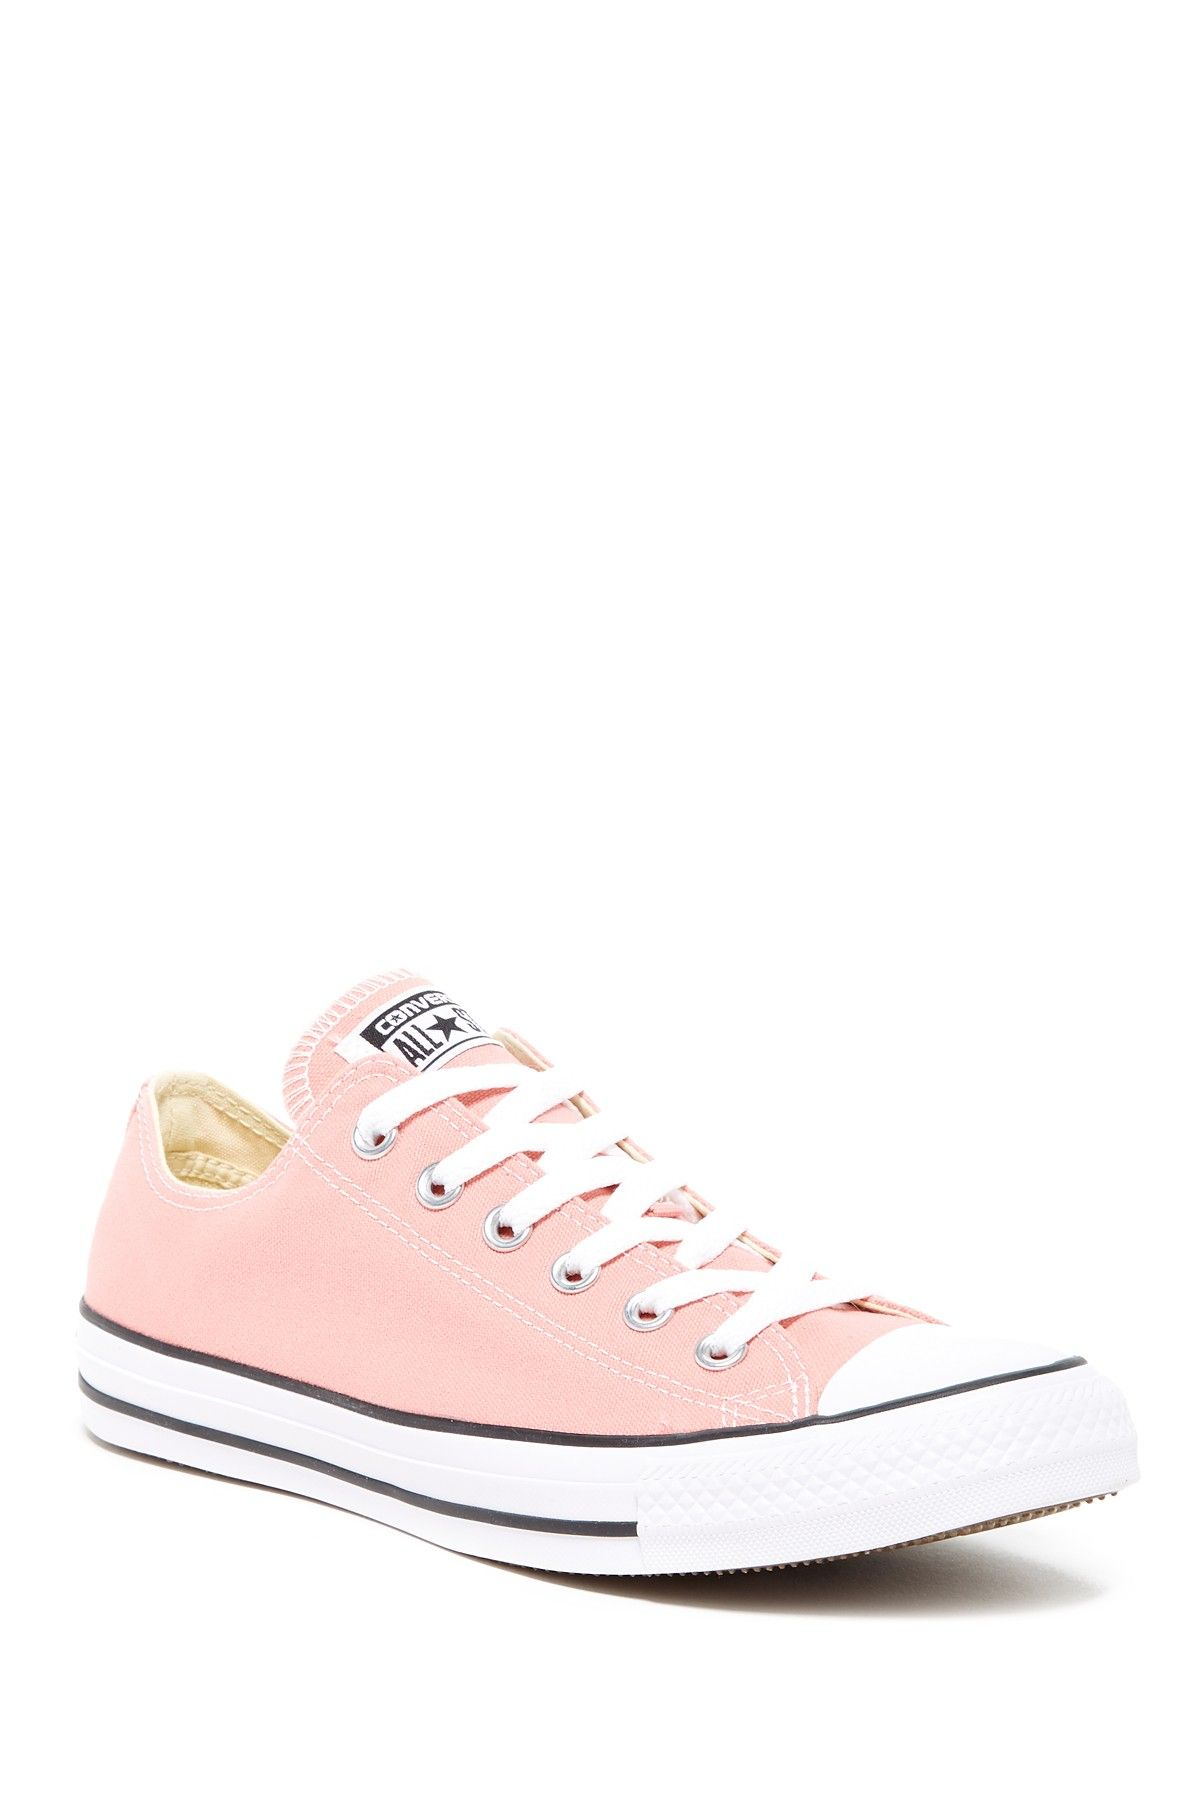 7ecec7f78d1 CTAS Low Top Sneaker (Unisex) by Converse on  nordstrom rack Zapatillas  Converse Mujer